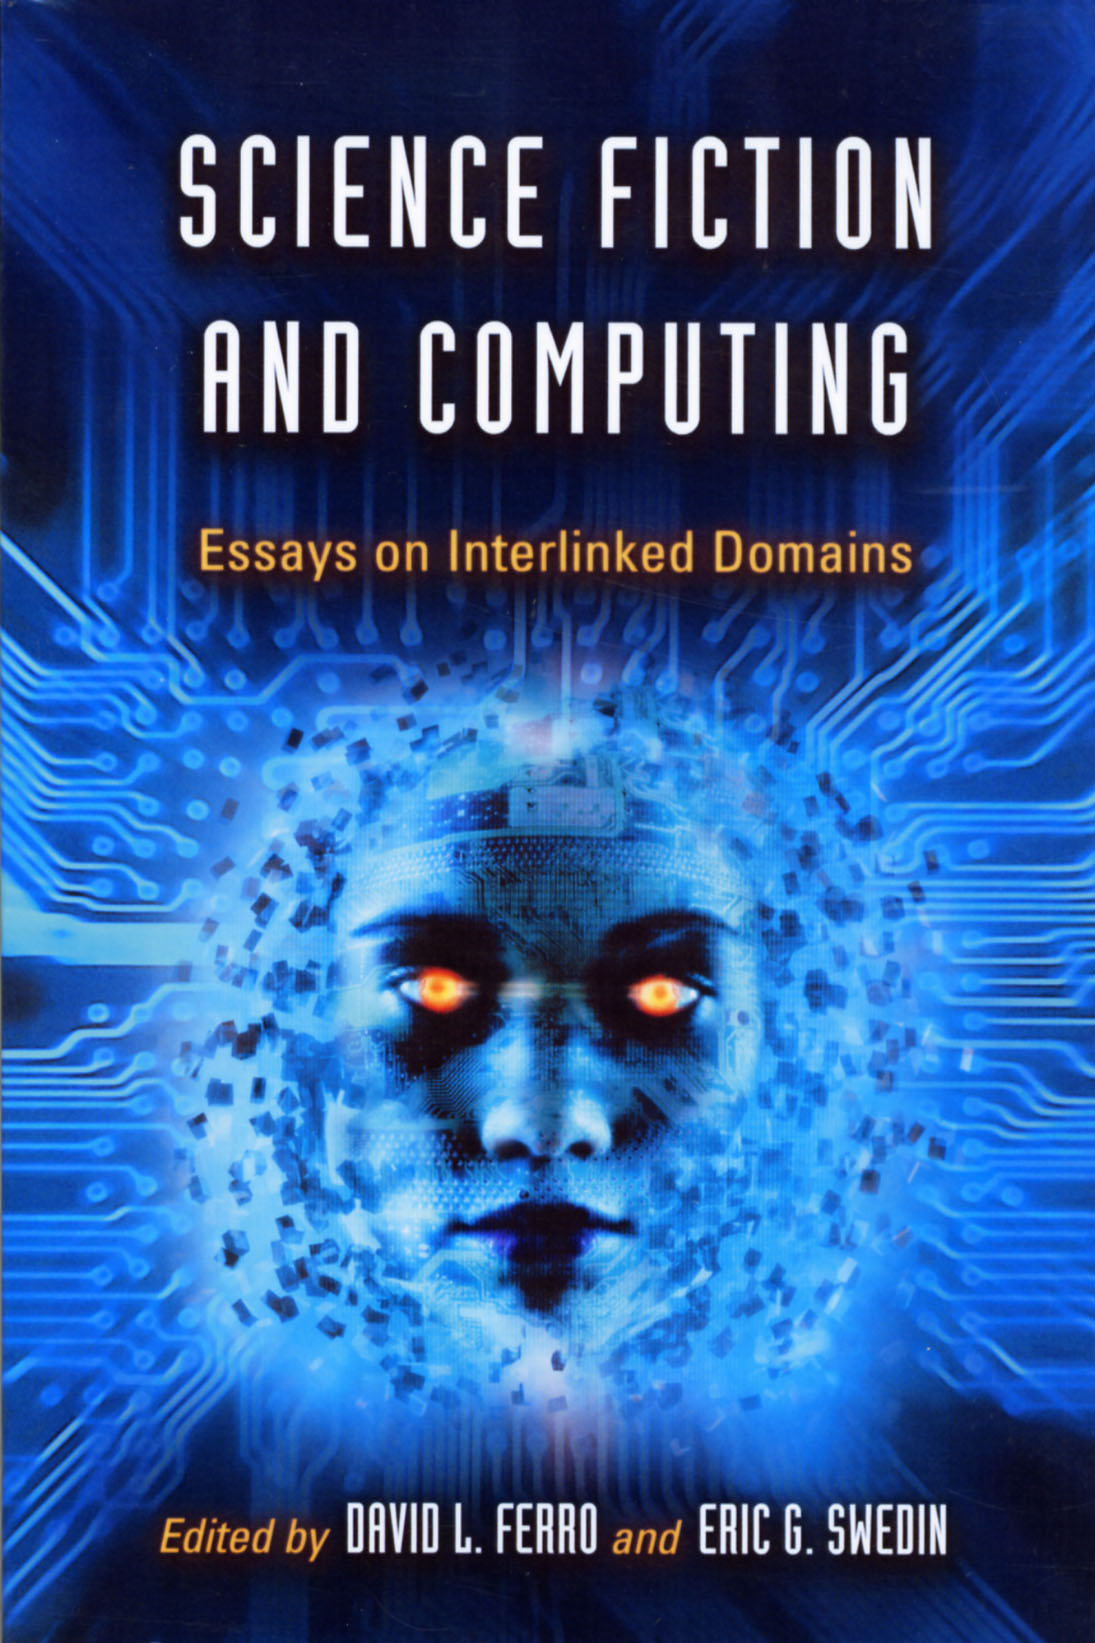 Science Fiction And Computing Essays On Interlinked Domains  Science Fiction And Computing Essays On Interlinked Domains